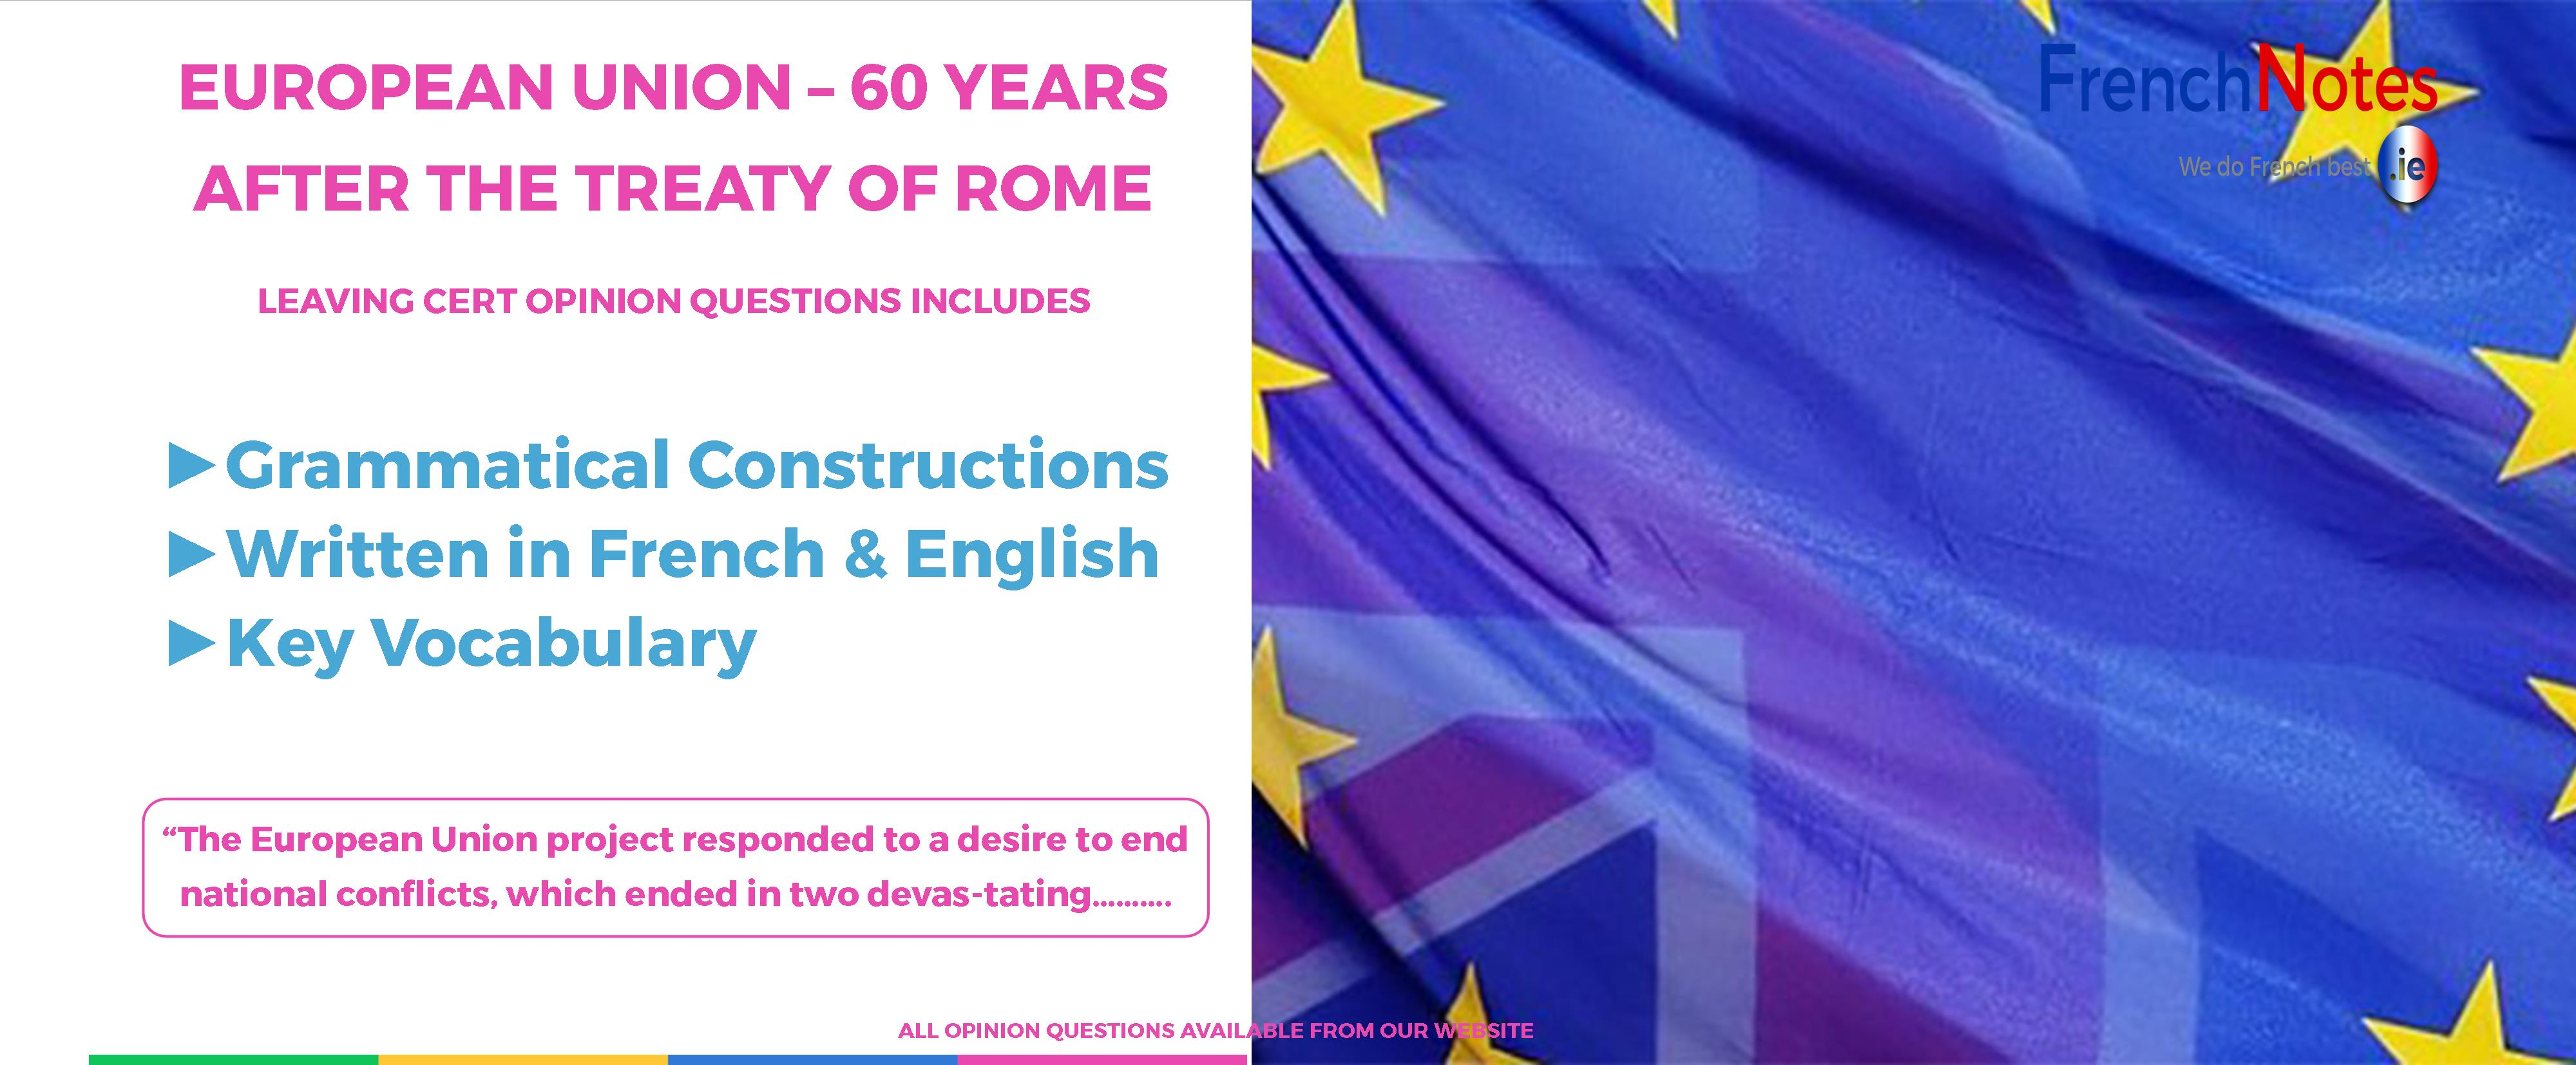 French Notes On 'The EUROPEAN UNION - 60 YEARS AFTER ...' For Secondary School Students In Ireland